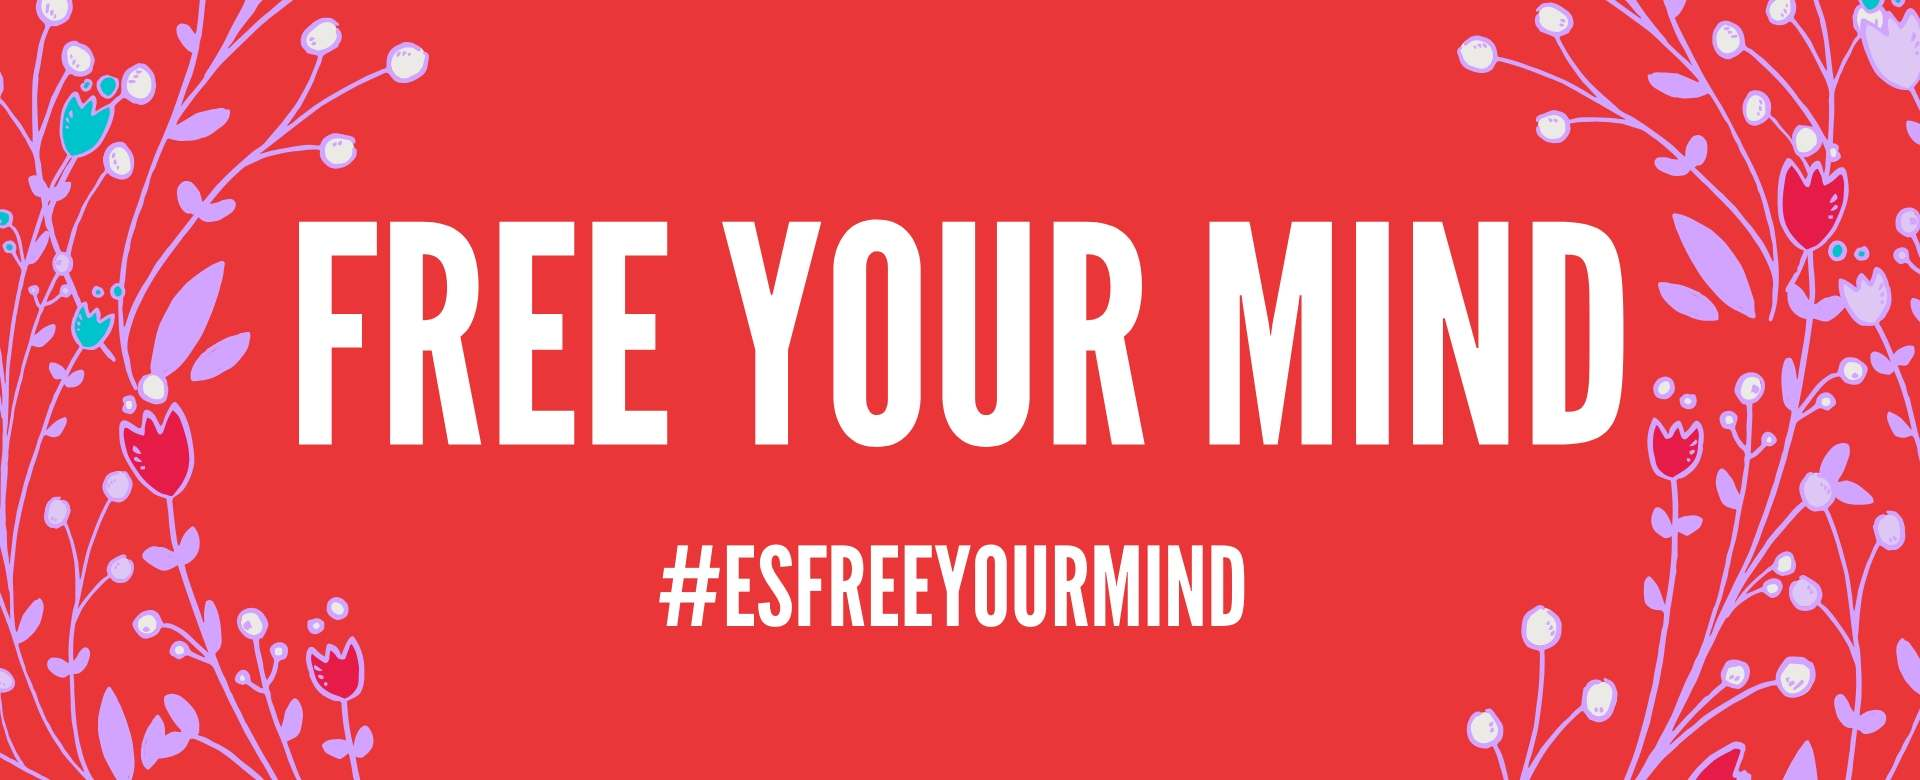 Website Banner- FREE YOUR MIND